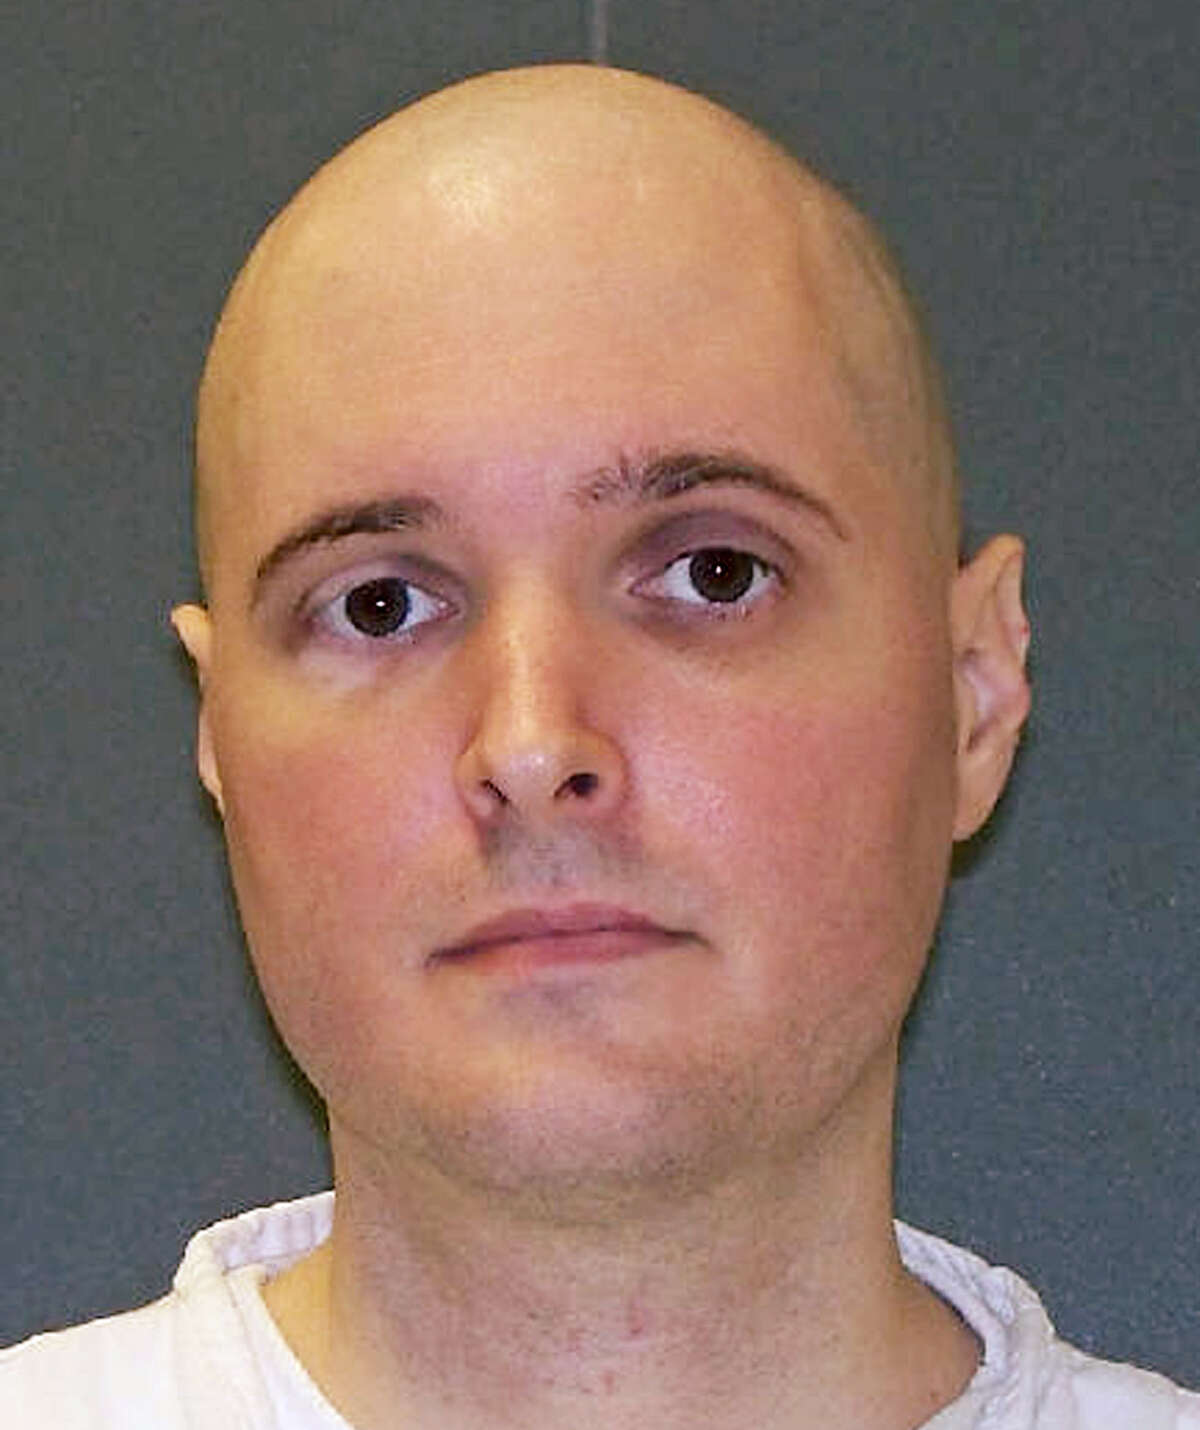 FILE - This undated FILE photo provided by the Texas Department of Criminal Justice shows death row inmate Thomas Whitaker. The U.S. Supreme Court on Tuesday, Oct. 10, 2017, Tuesday refused to consider an appeal from Whitaker, of suburban Houston, who arranged the killings of his mother and brother in 2003 so he could collect a $1 million inheritance. (Texas Department of Criminal Justice via AP, File)